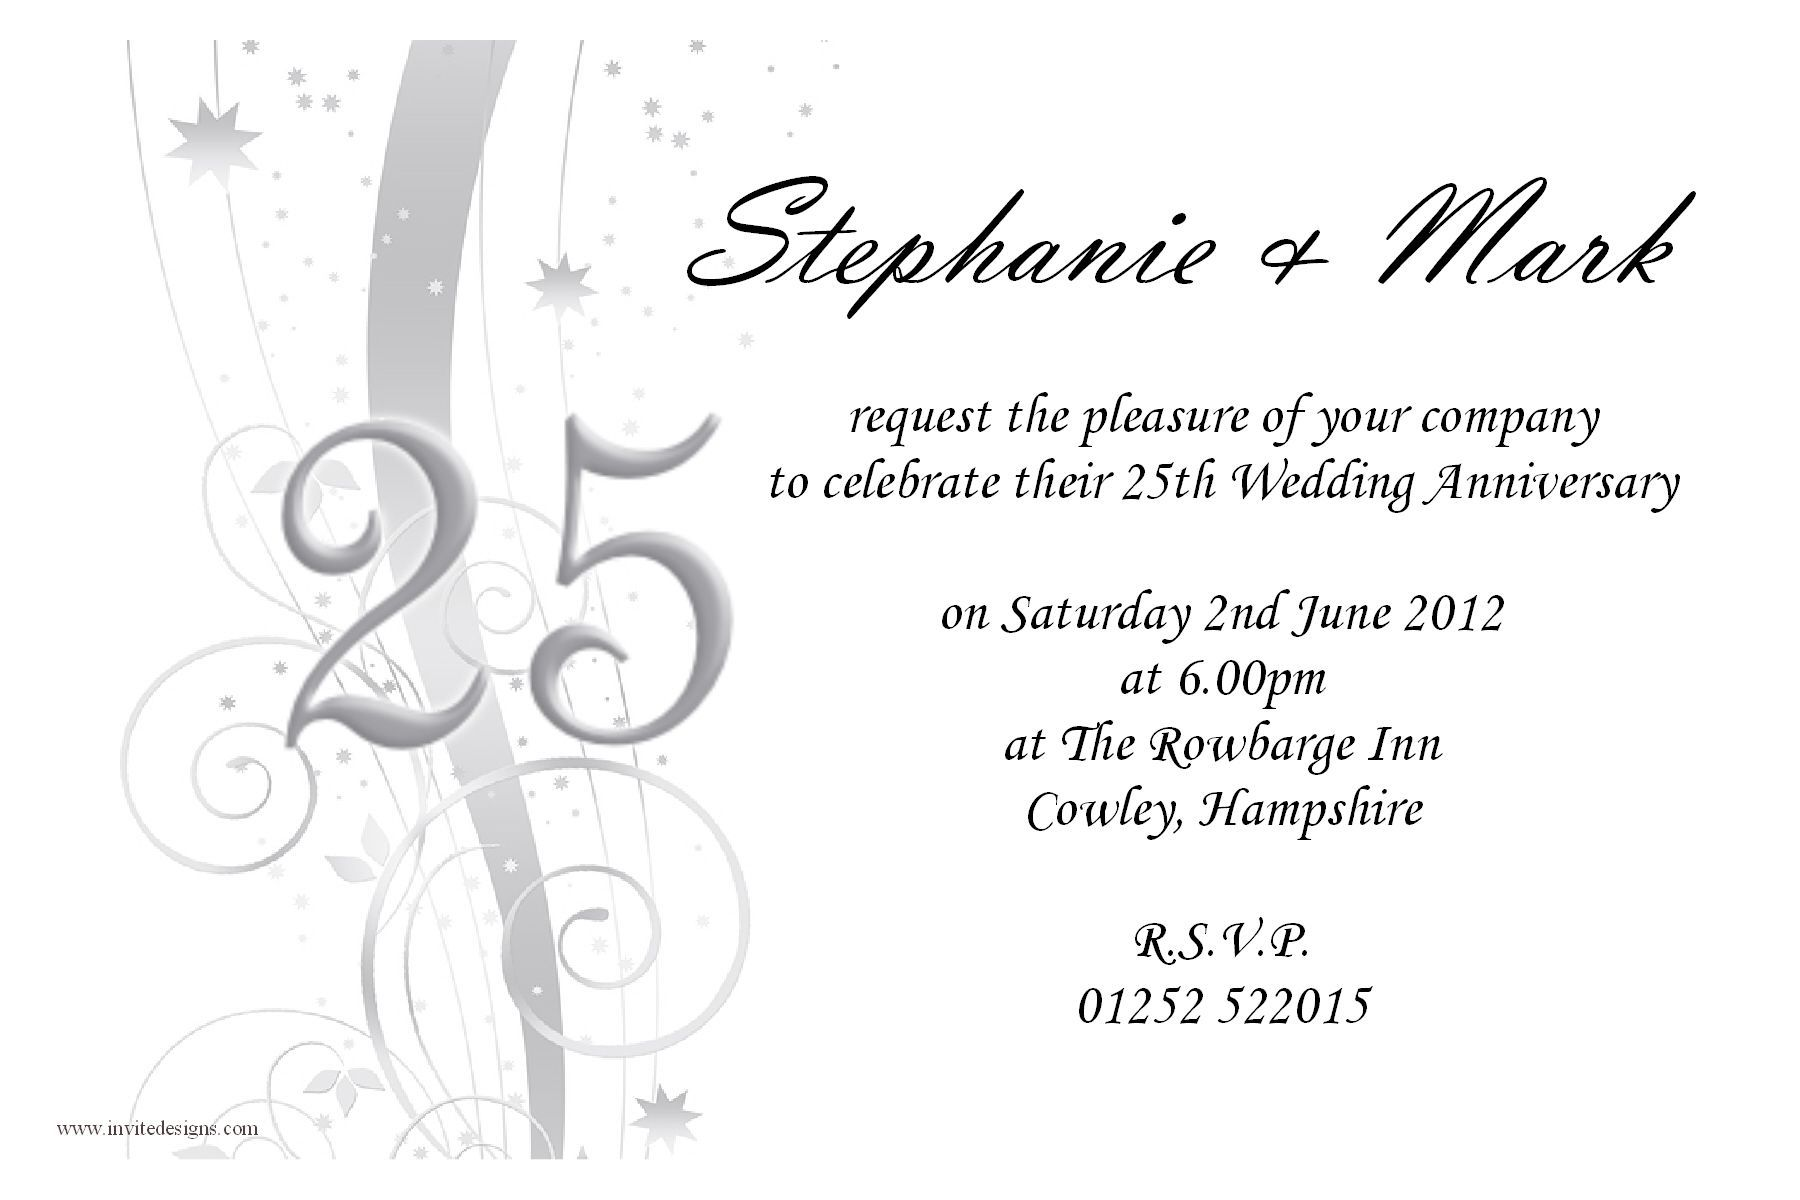 002 Incredible 50th Anniversary Invitation Wording Sample High Definition  Samples Wedding CardFull